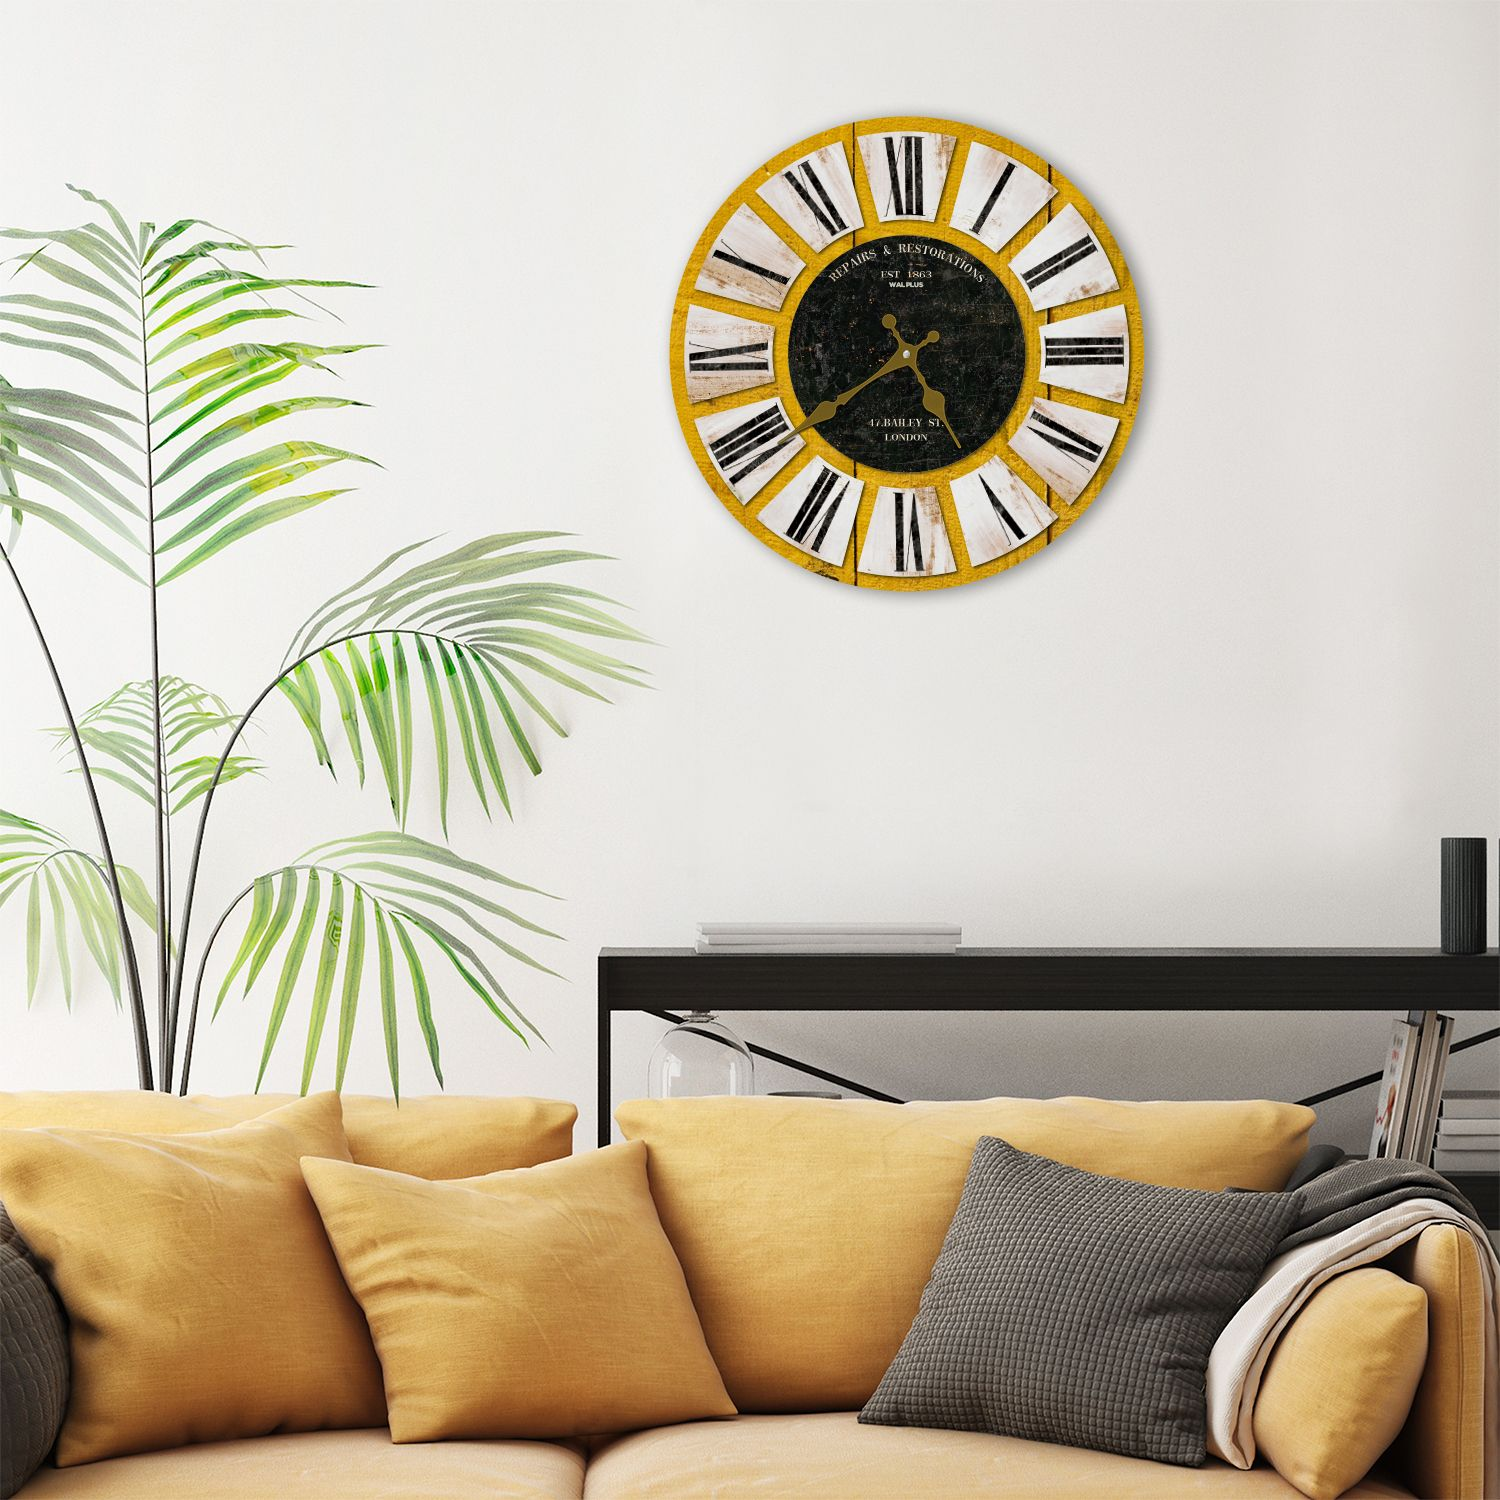 Colouful Wooden Rustic Wall Clock, DIY Art, Kitchen Decorations, Bedroom, Home Design, House Décor, Living room ideas